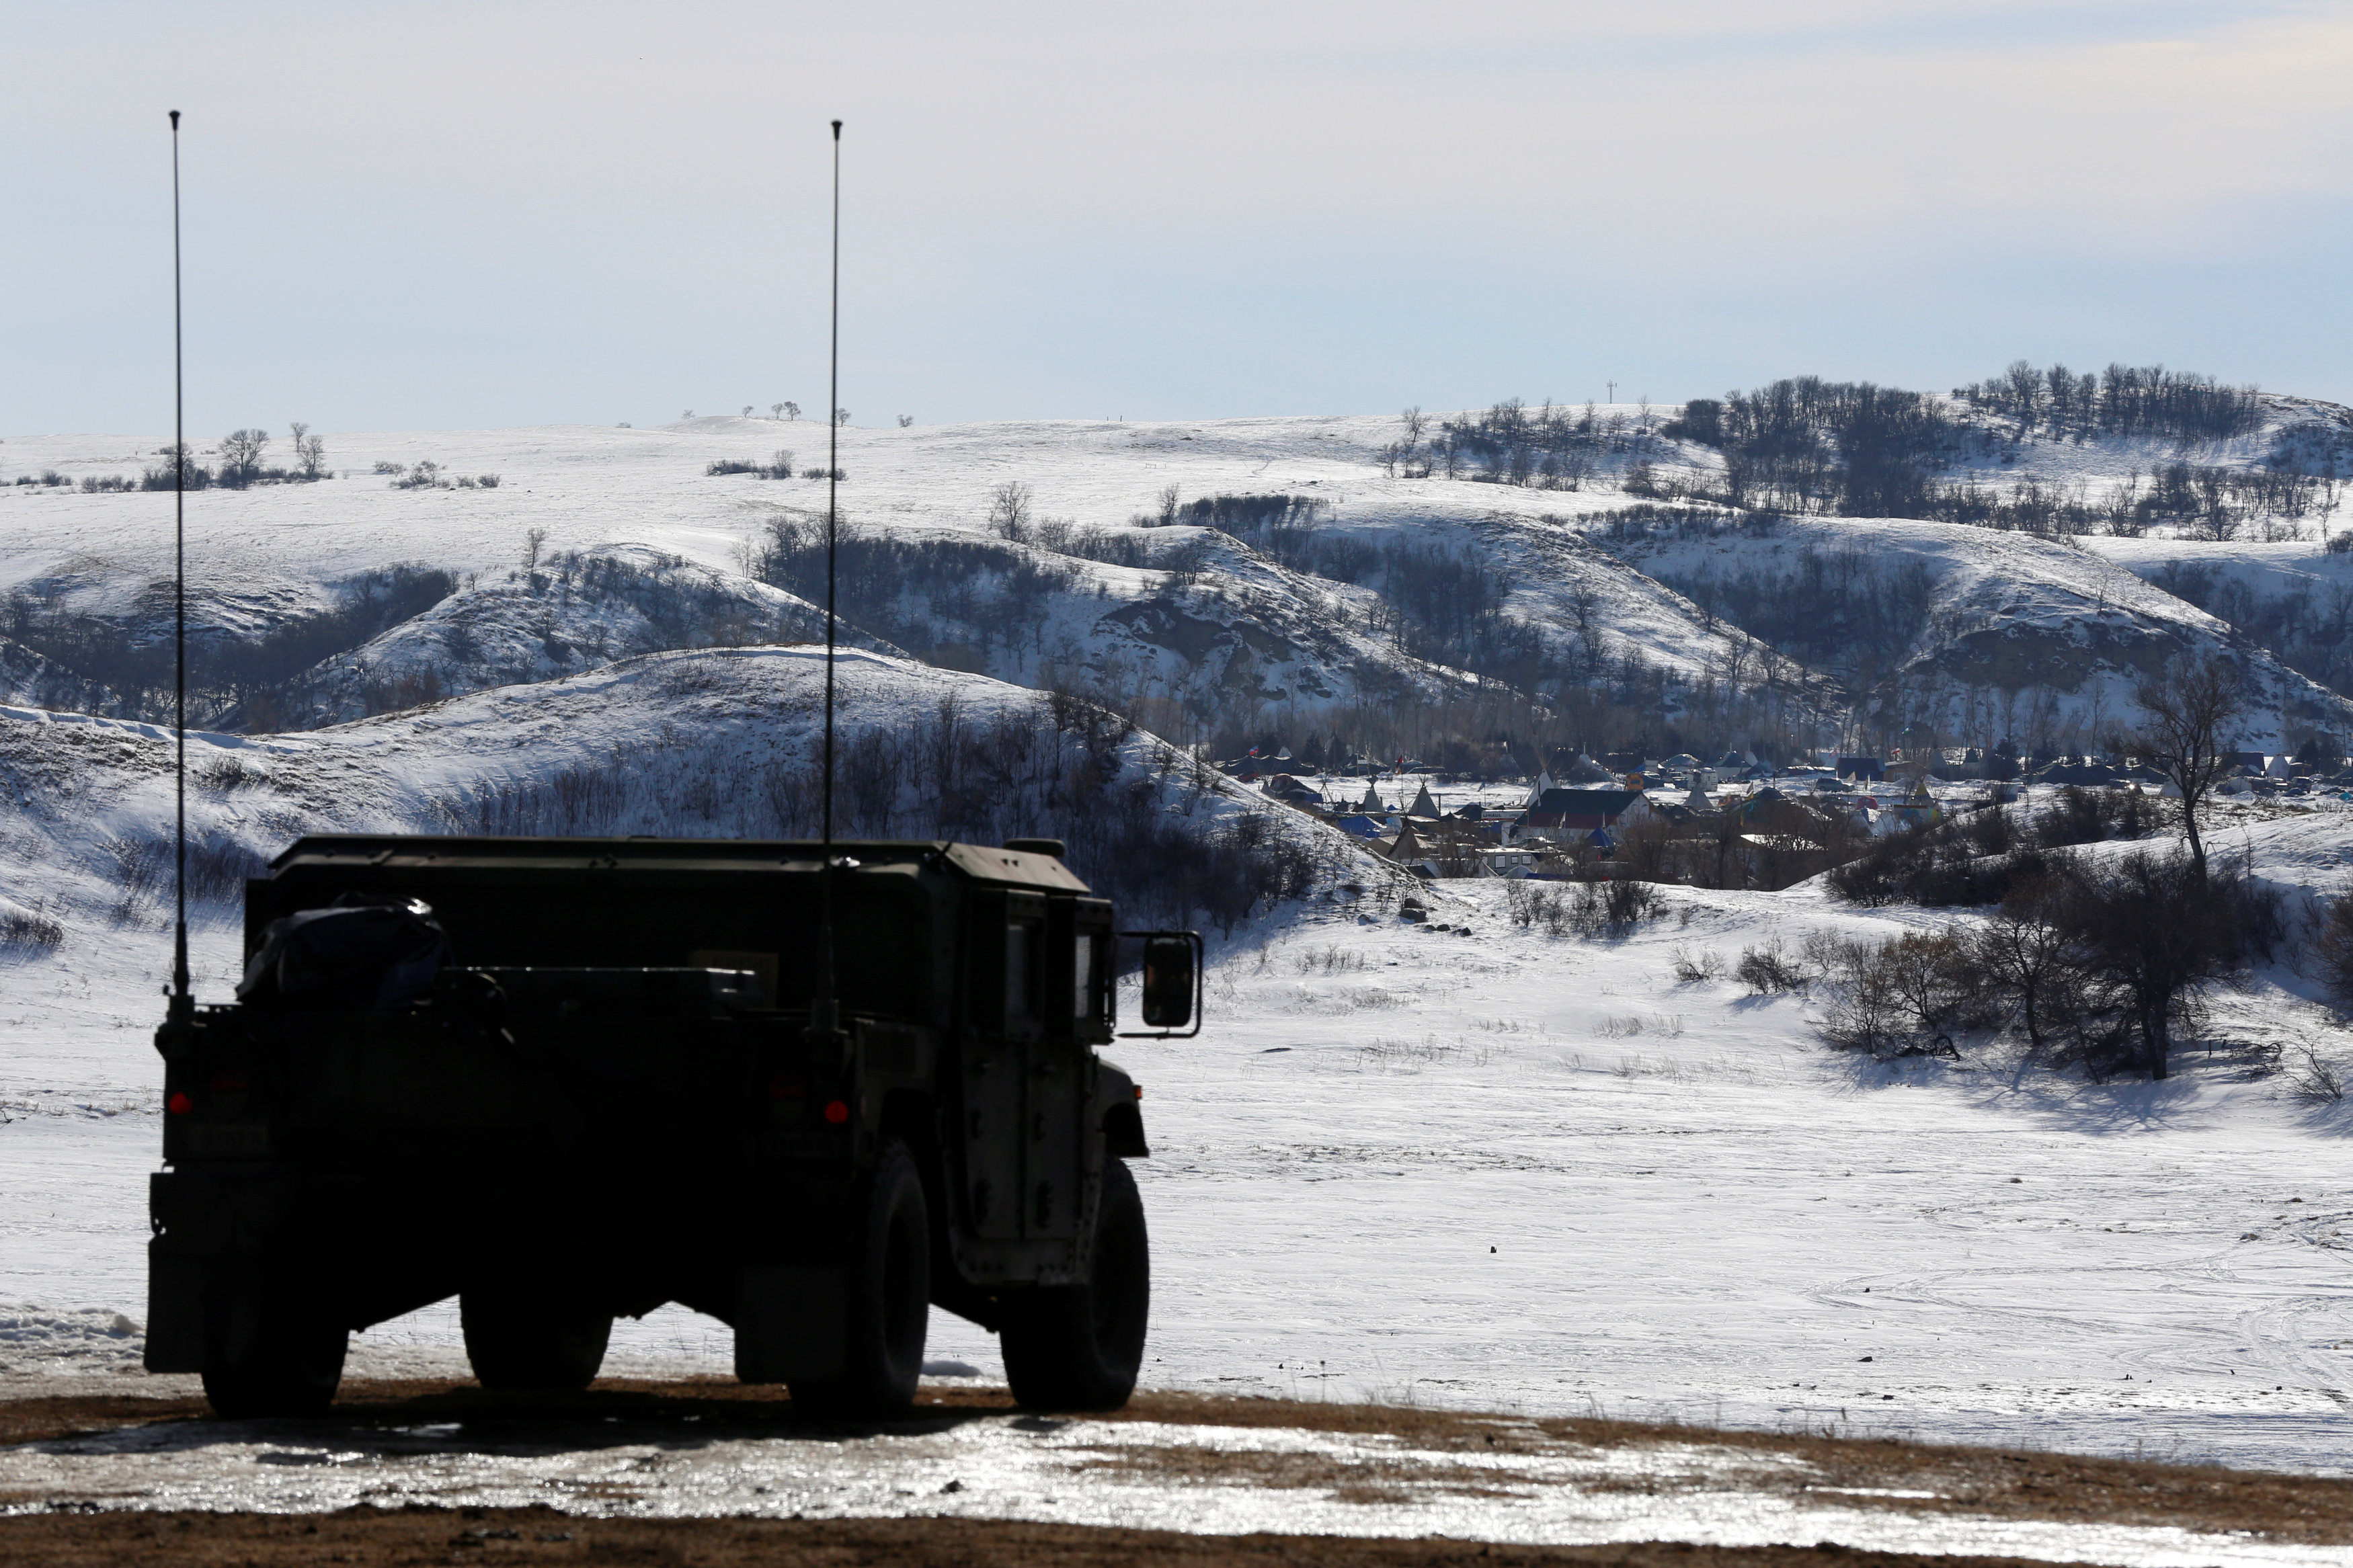 north dakota national guard near dakota access pipeline